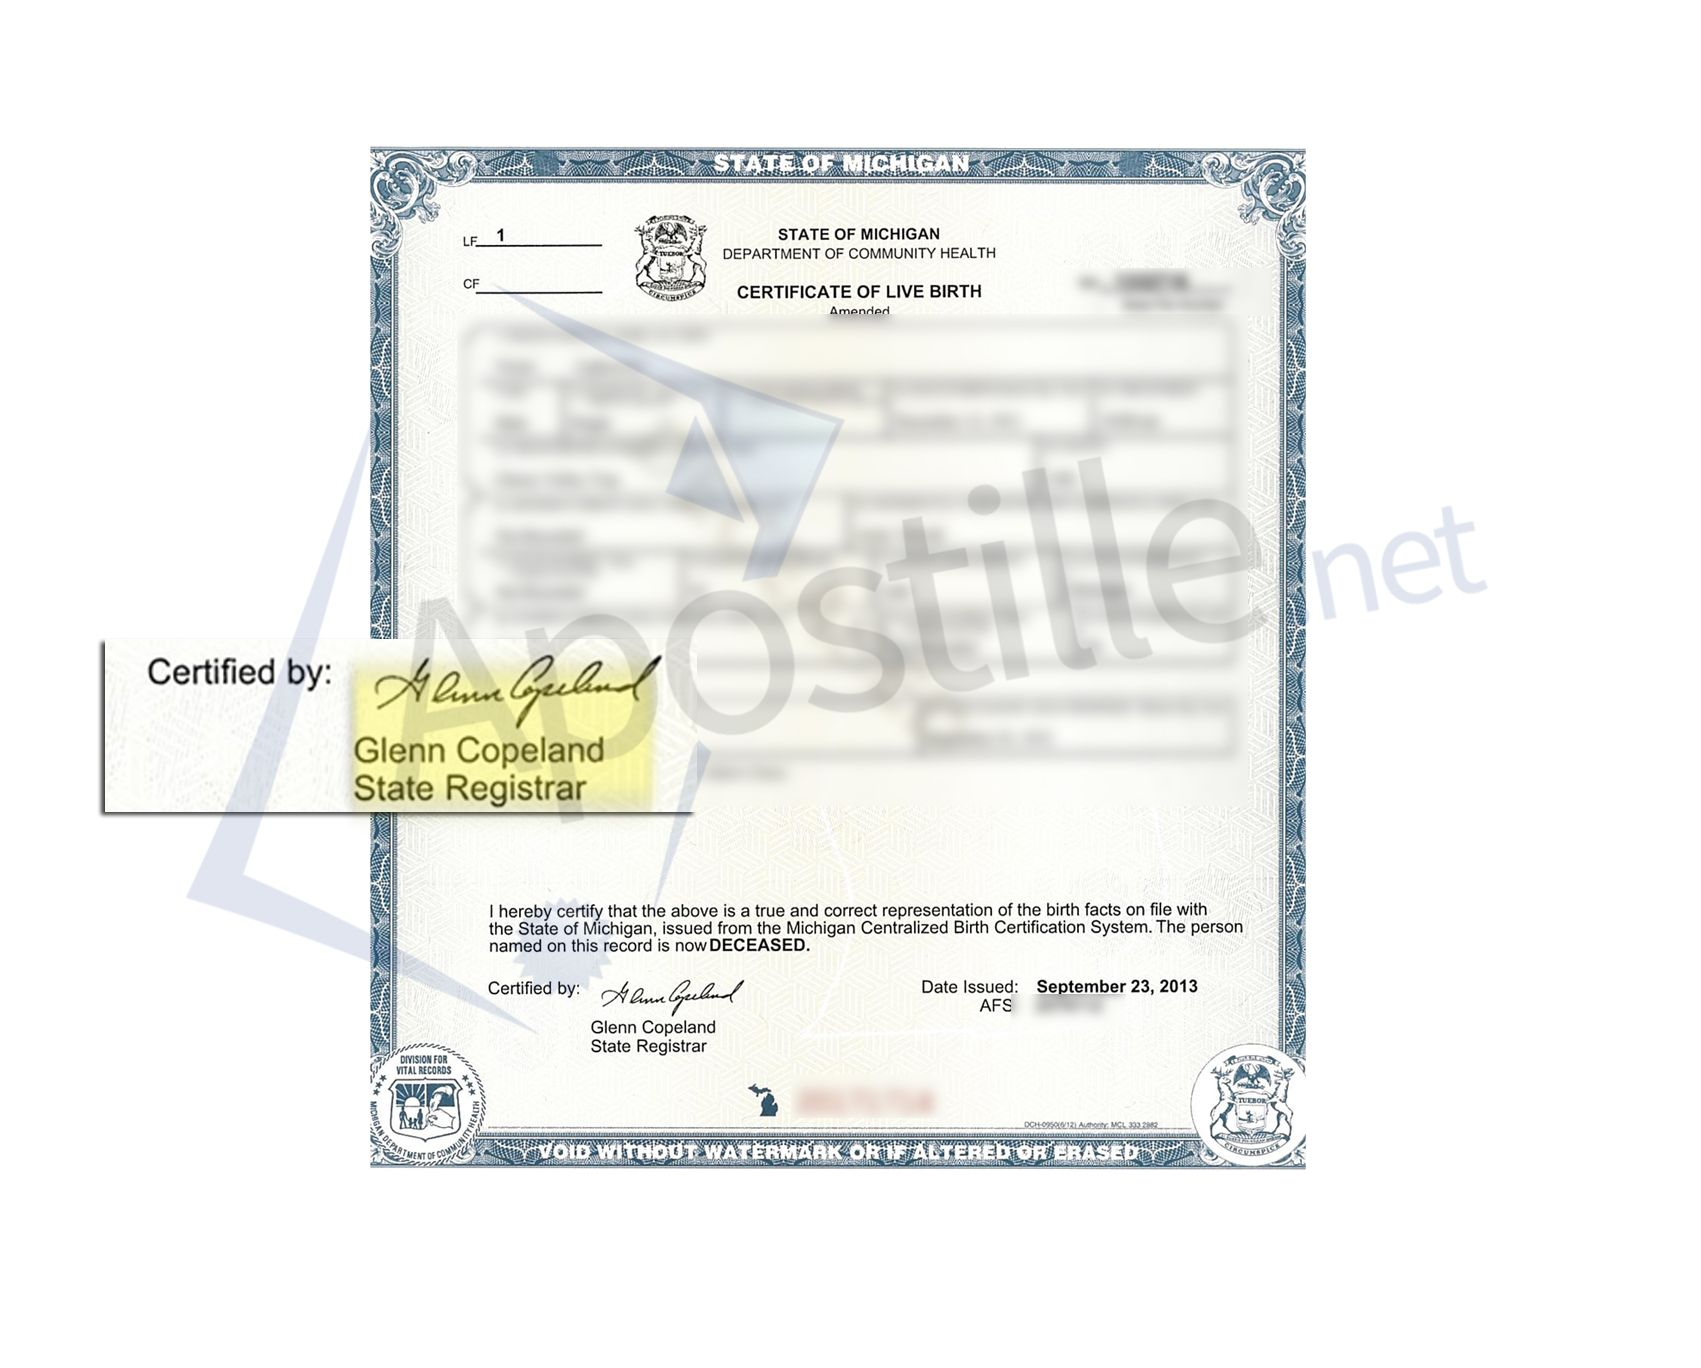 State Of Michigan Birth Certificate Signed By Glenn Copeland State